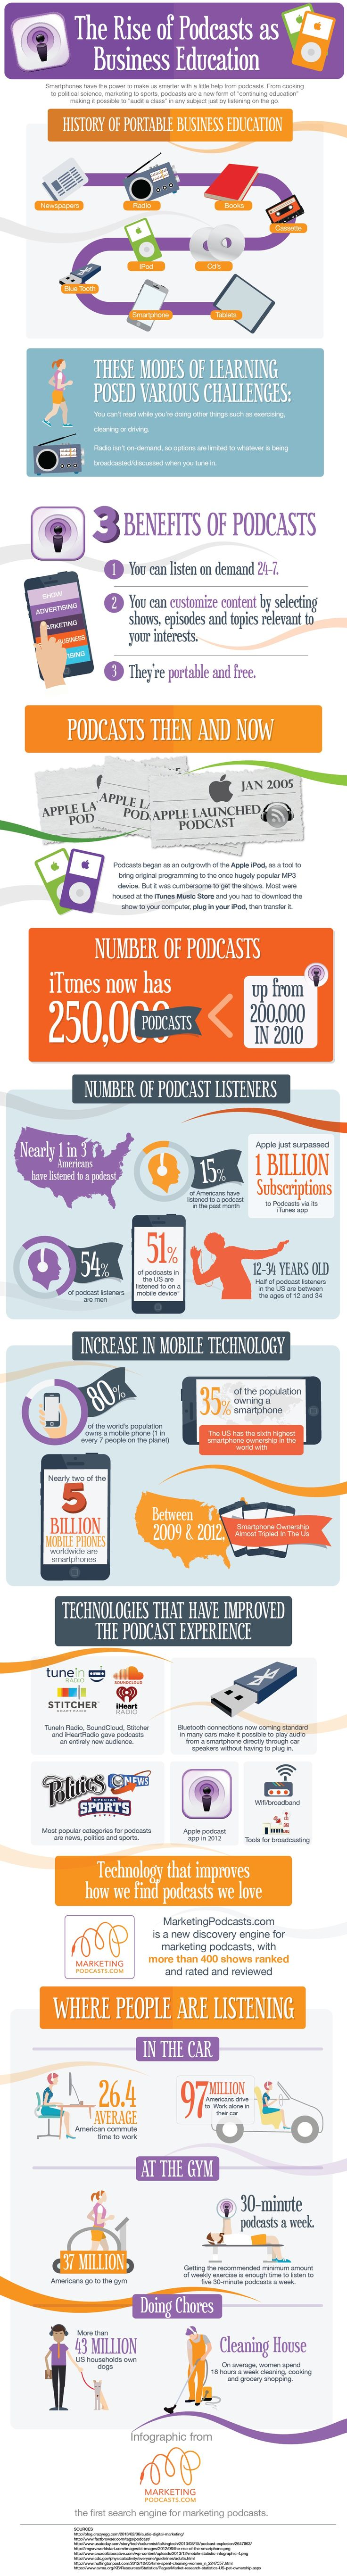 The Rise of #Podcasts as Business Education - awesome #infographic